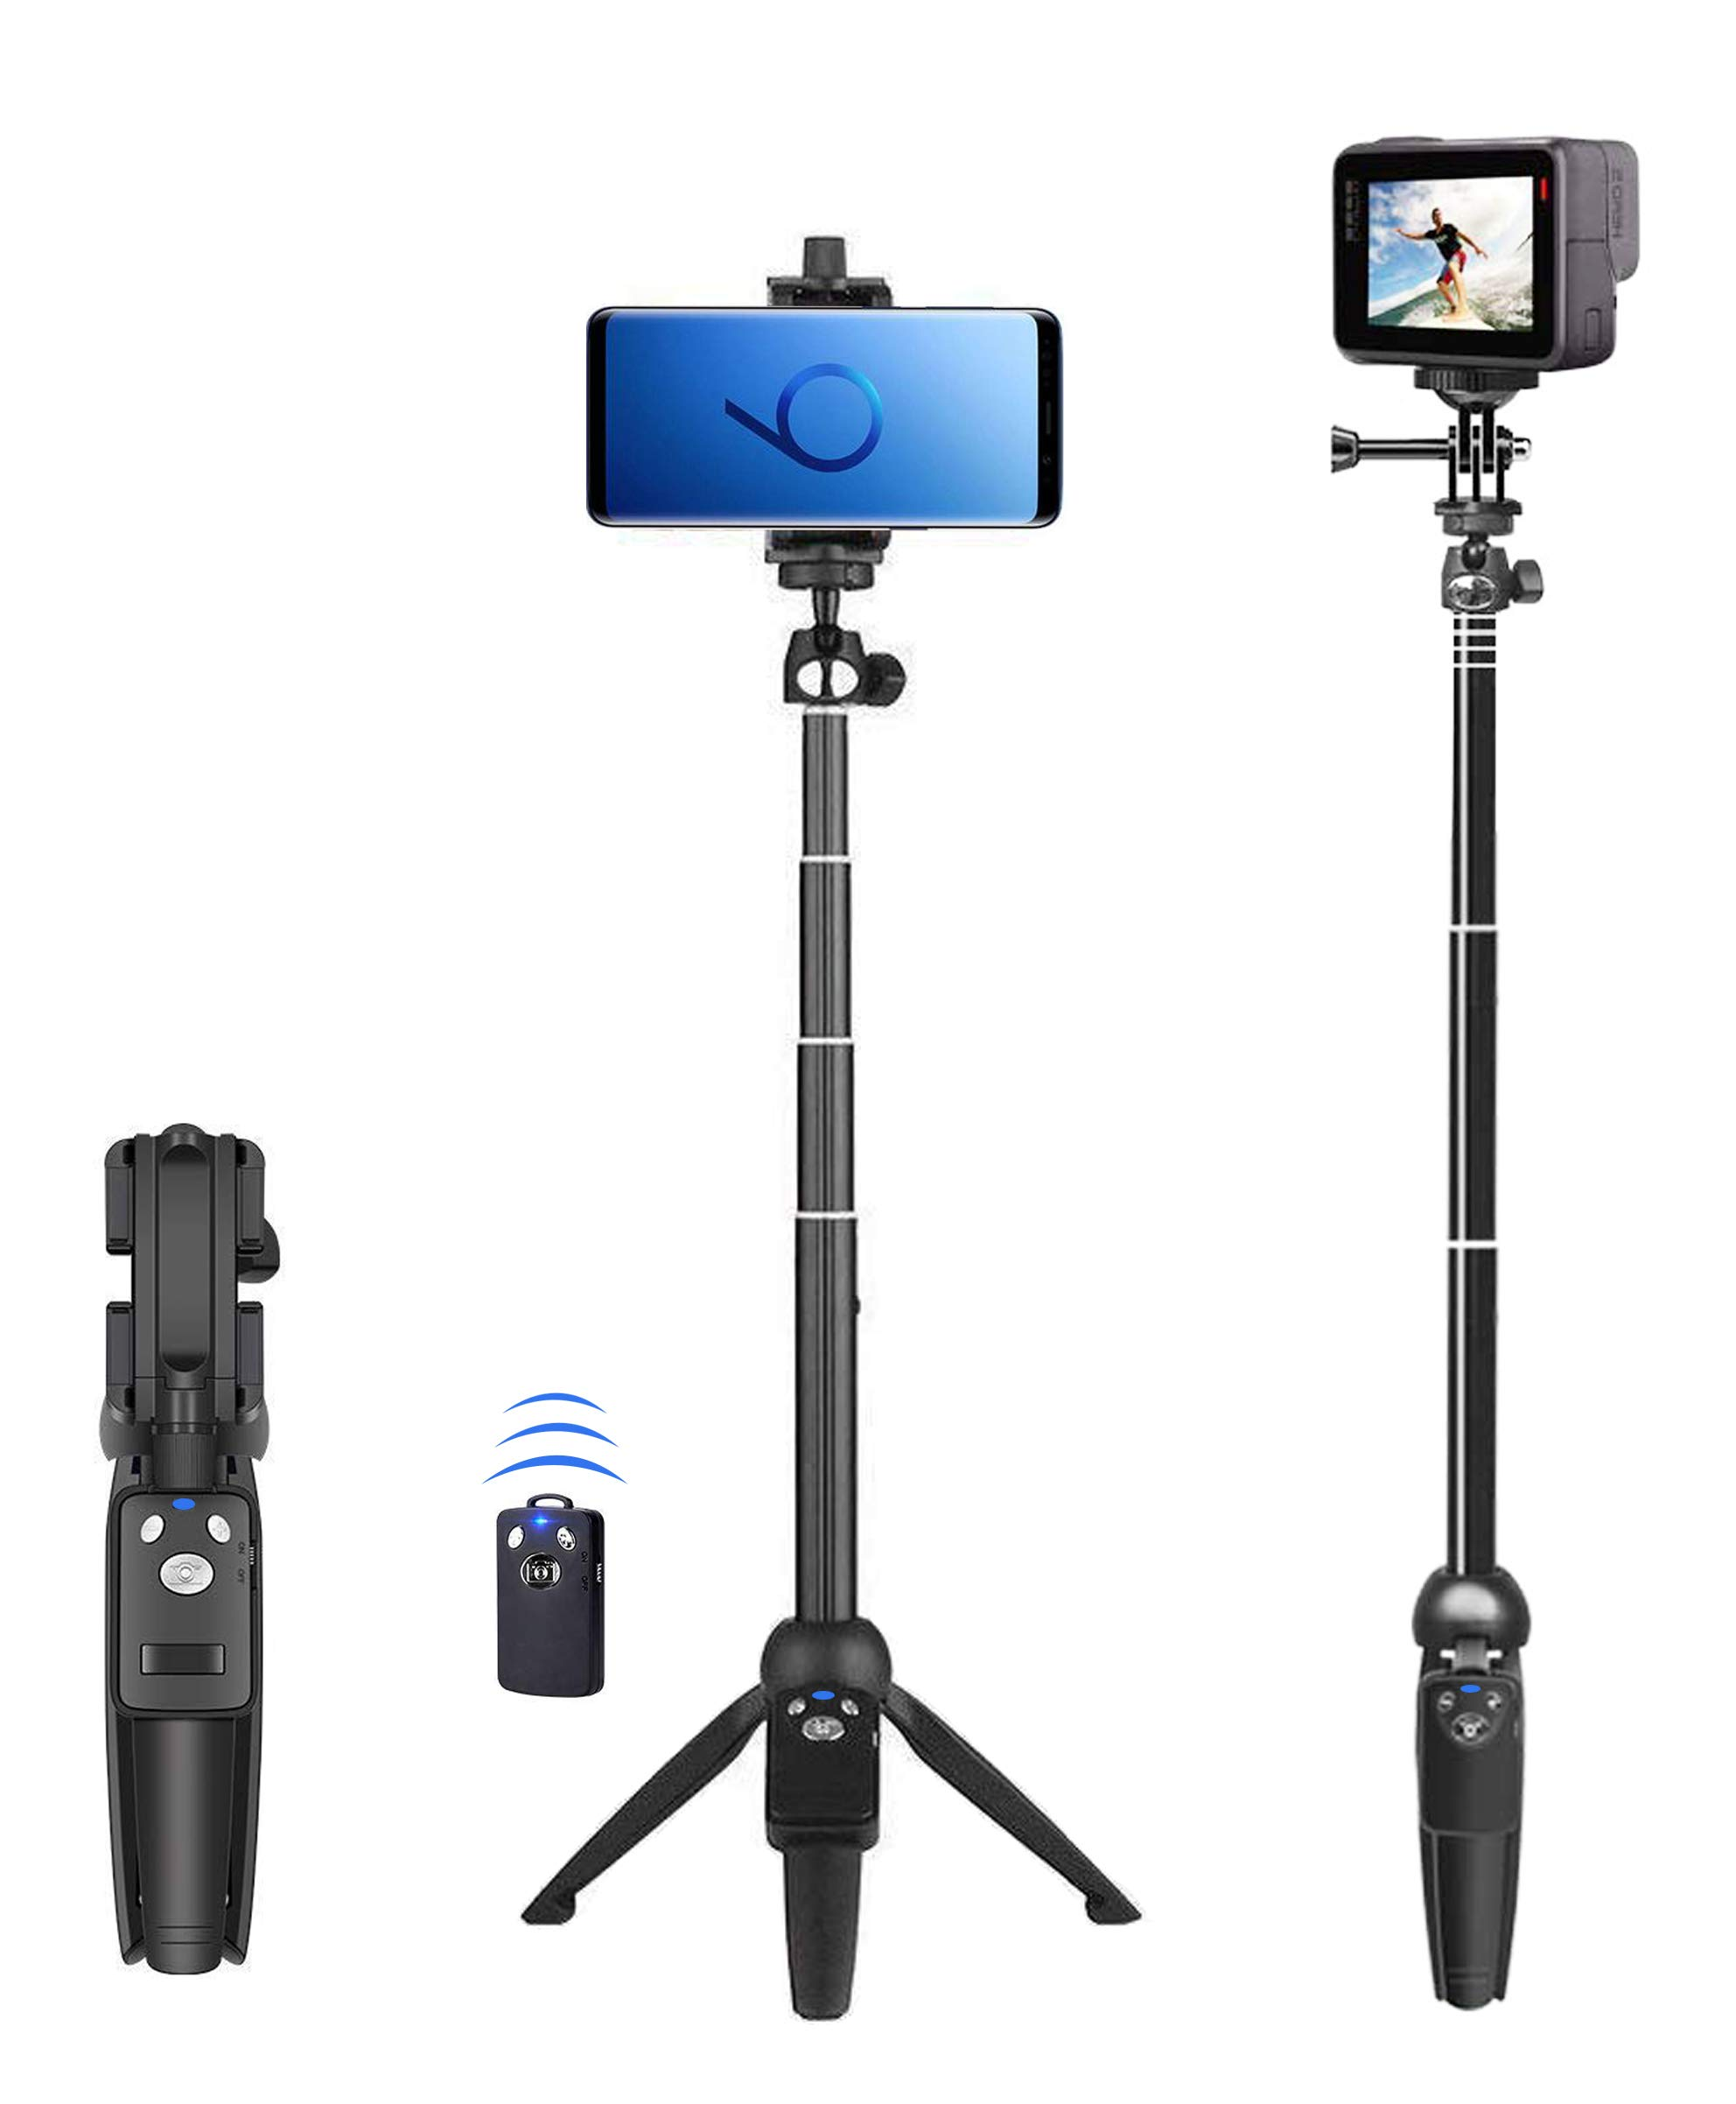 Selfie Stick, 40 inch Extendable Selfie Stick Tripod,Phone Tripod with Wireless Remote Shutter Compatible with iPhone Xs Max Xr X 8Plus 7 6 6s Plus, Android, Samsung Galaxy S10 S9,Gopro and More by BZE